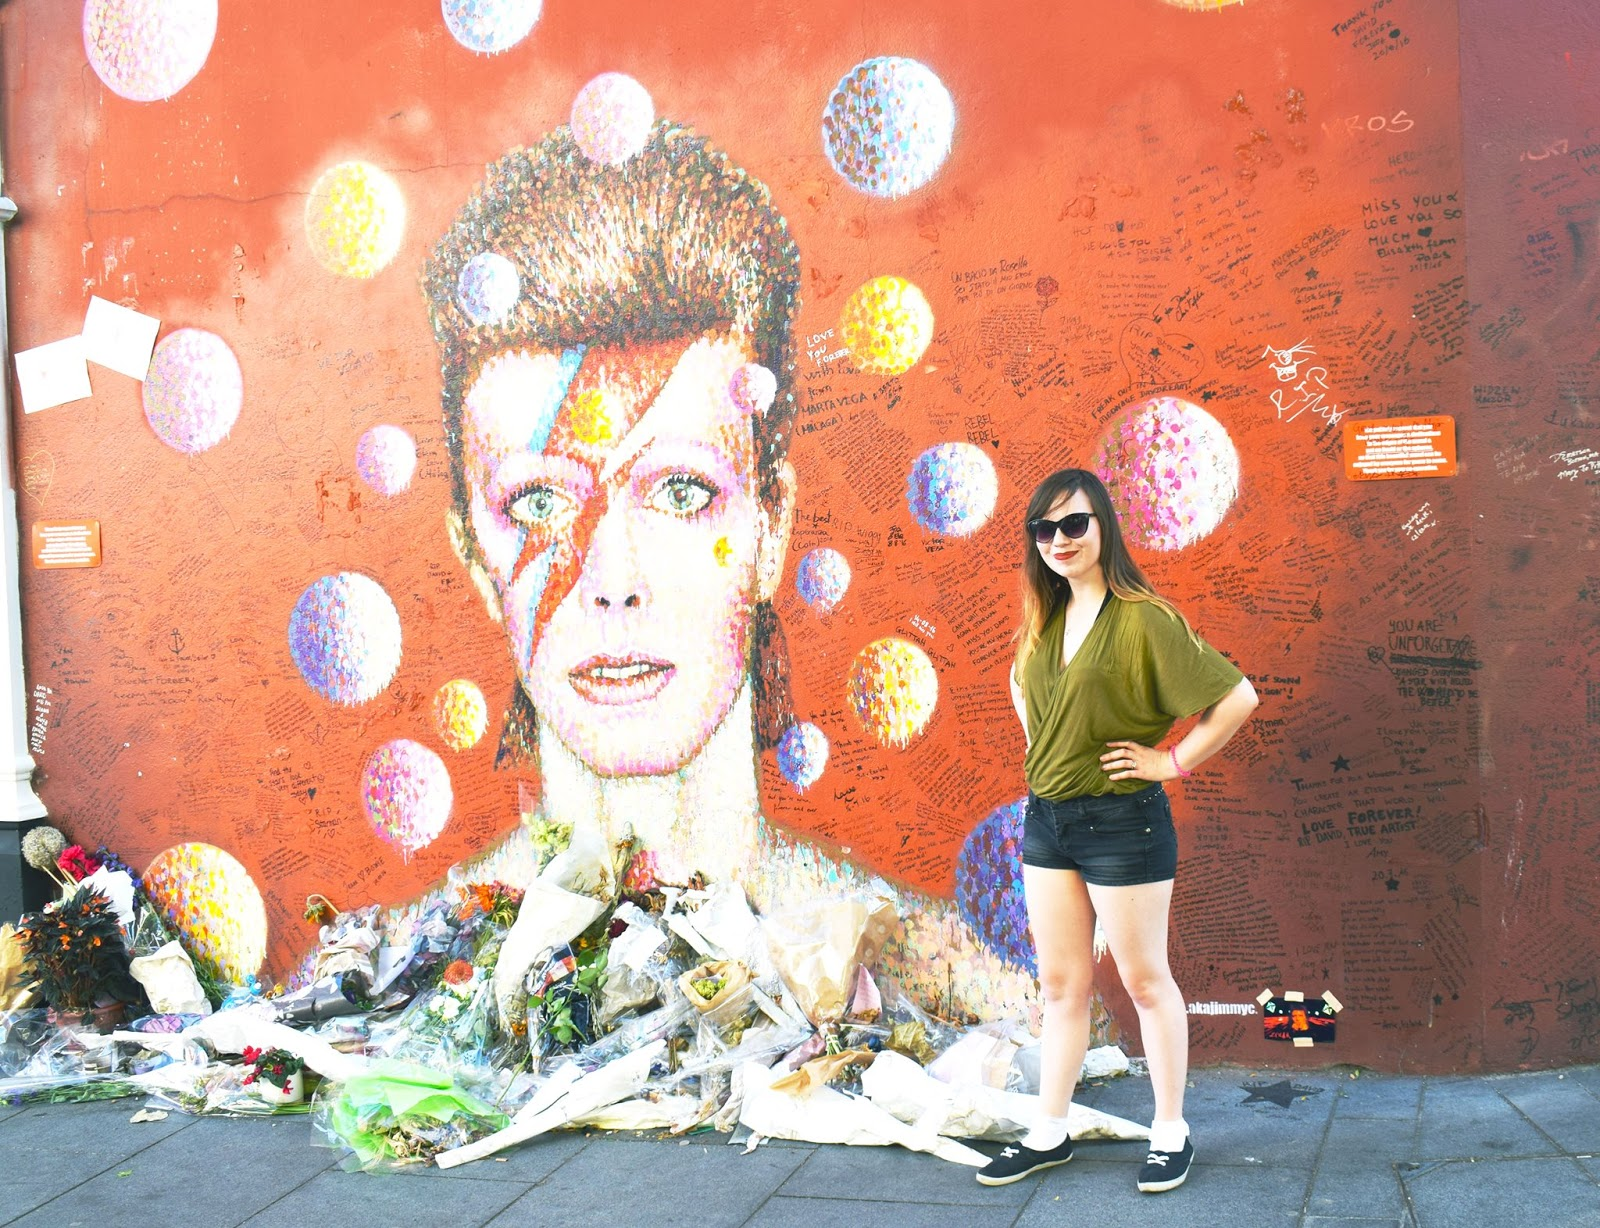 lebellelavie - David Bowie & a family trip to London